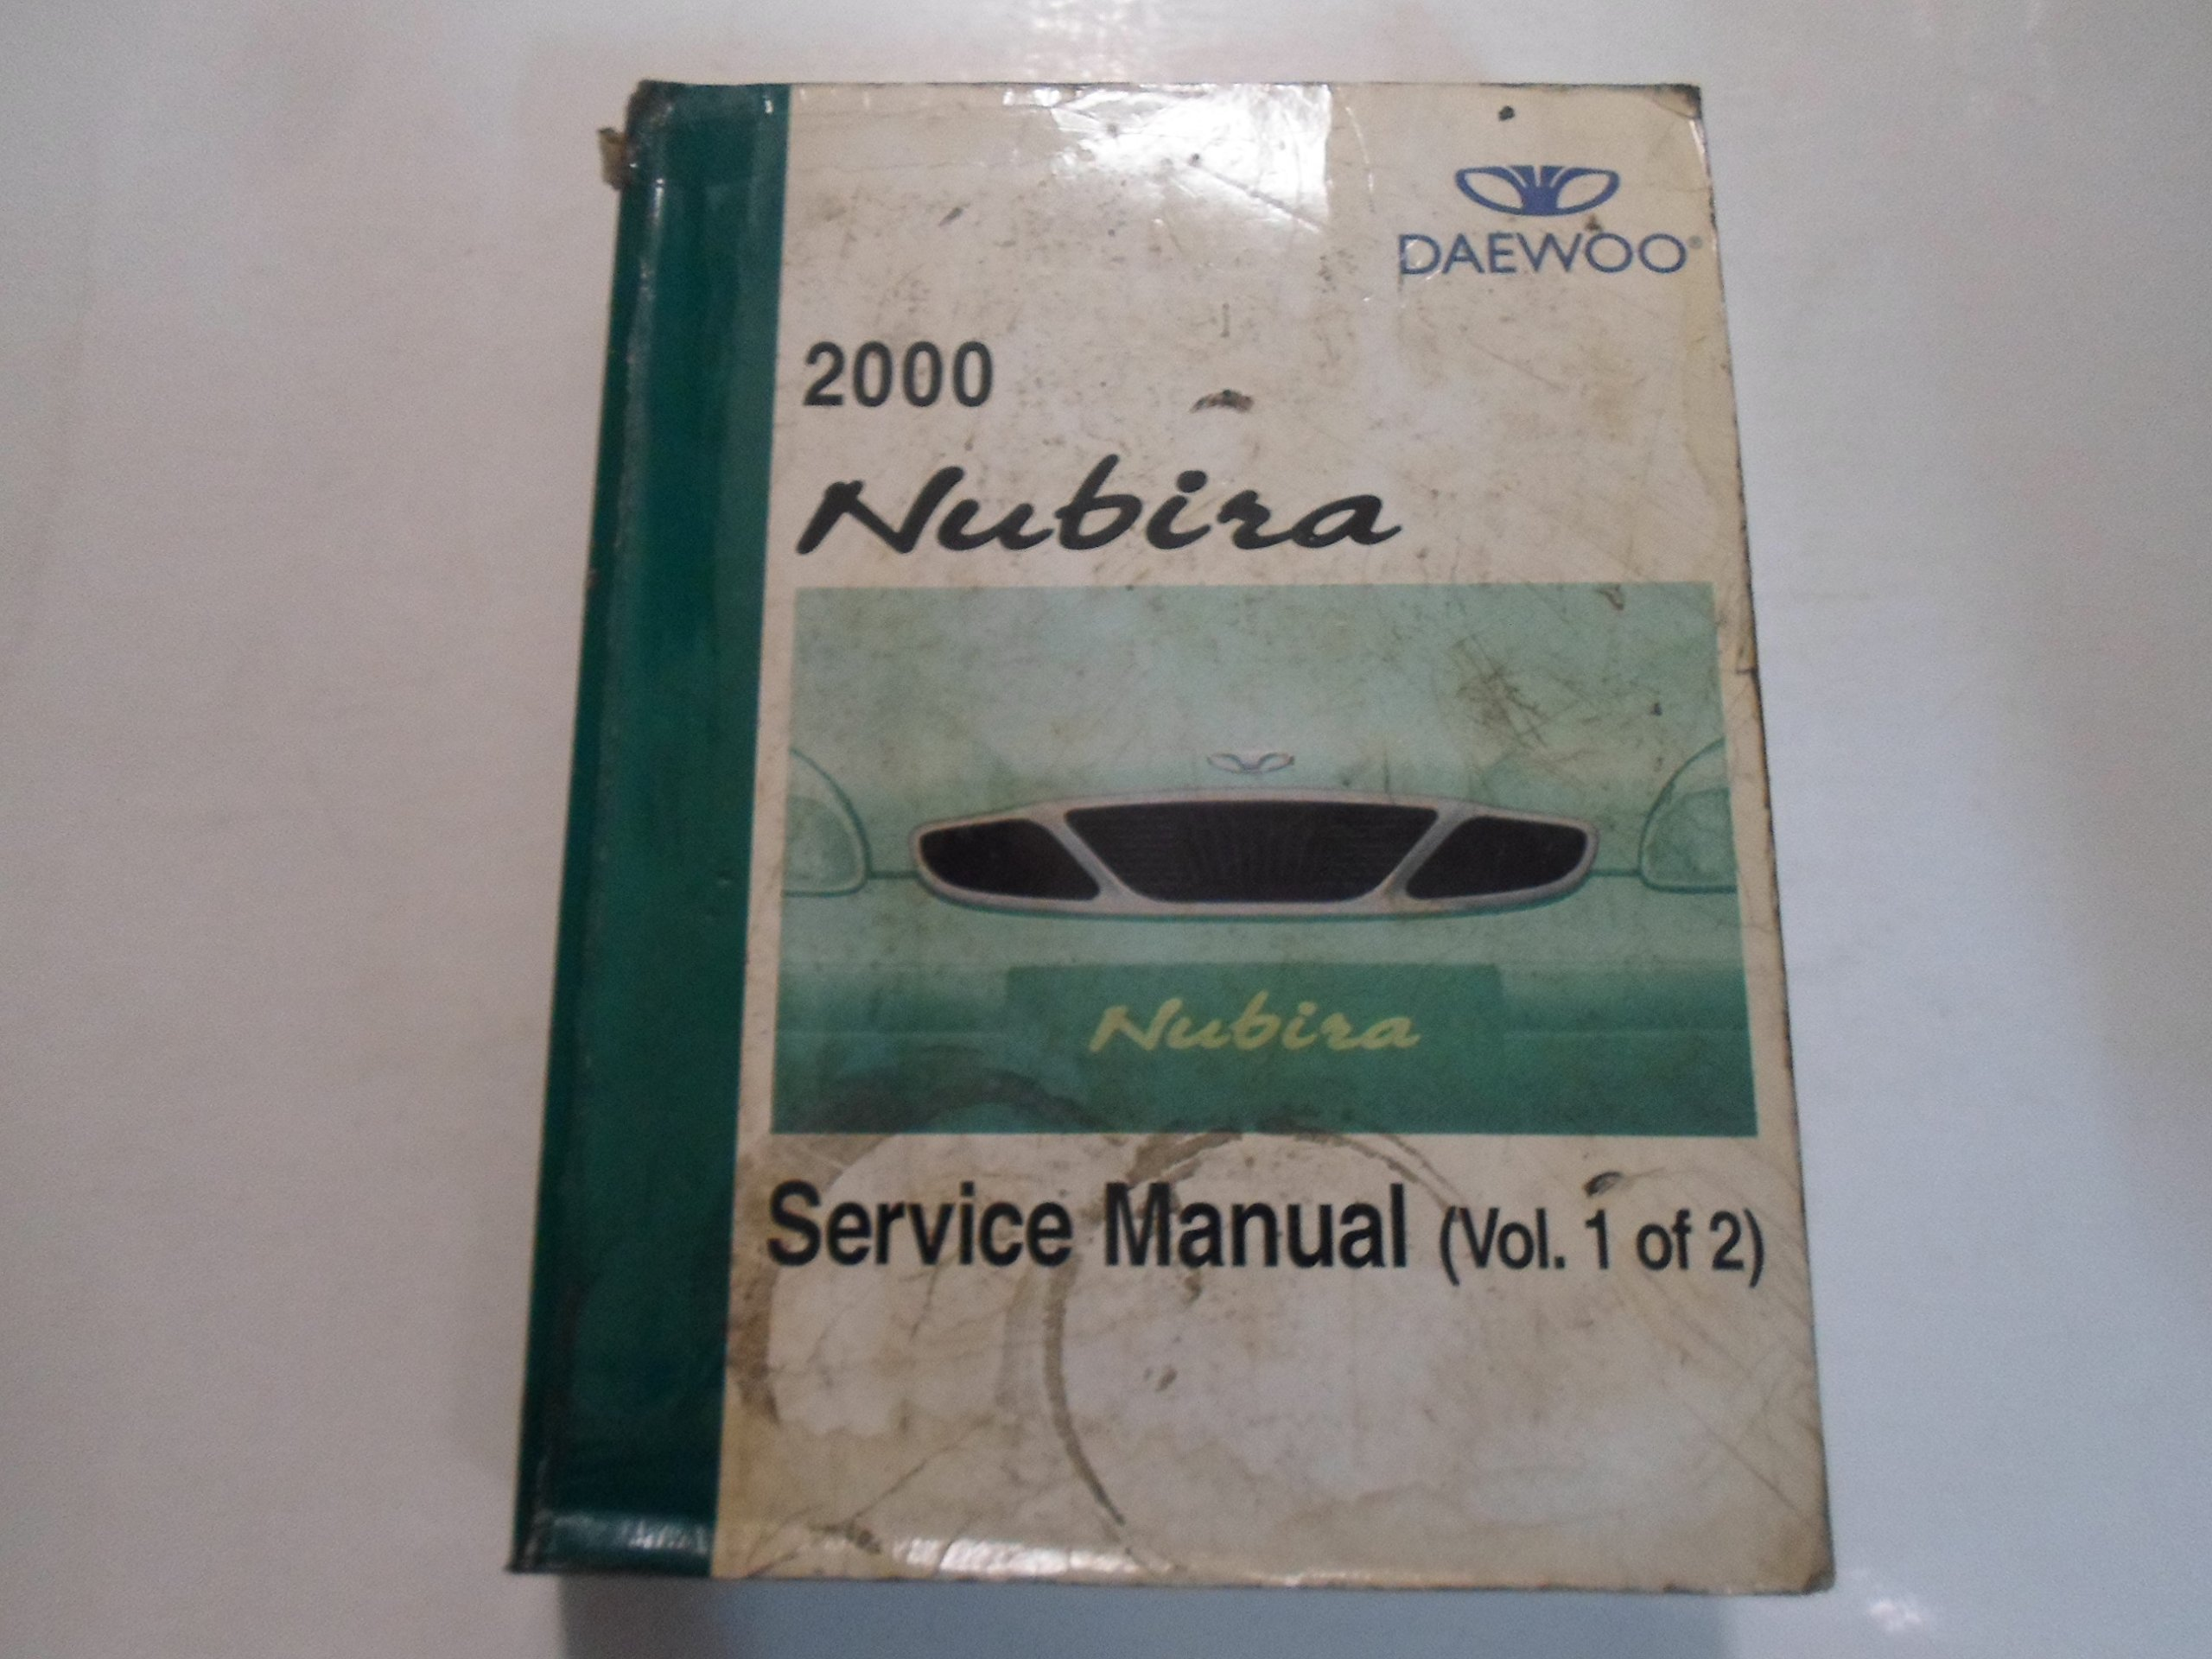 2000 daewoo nubira service repair shop manual volume 1 of 2 water rh amazon  com 1999 Daewoo Lanos Values Daewoo Lanos Alternator Bearing